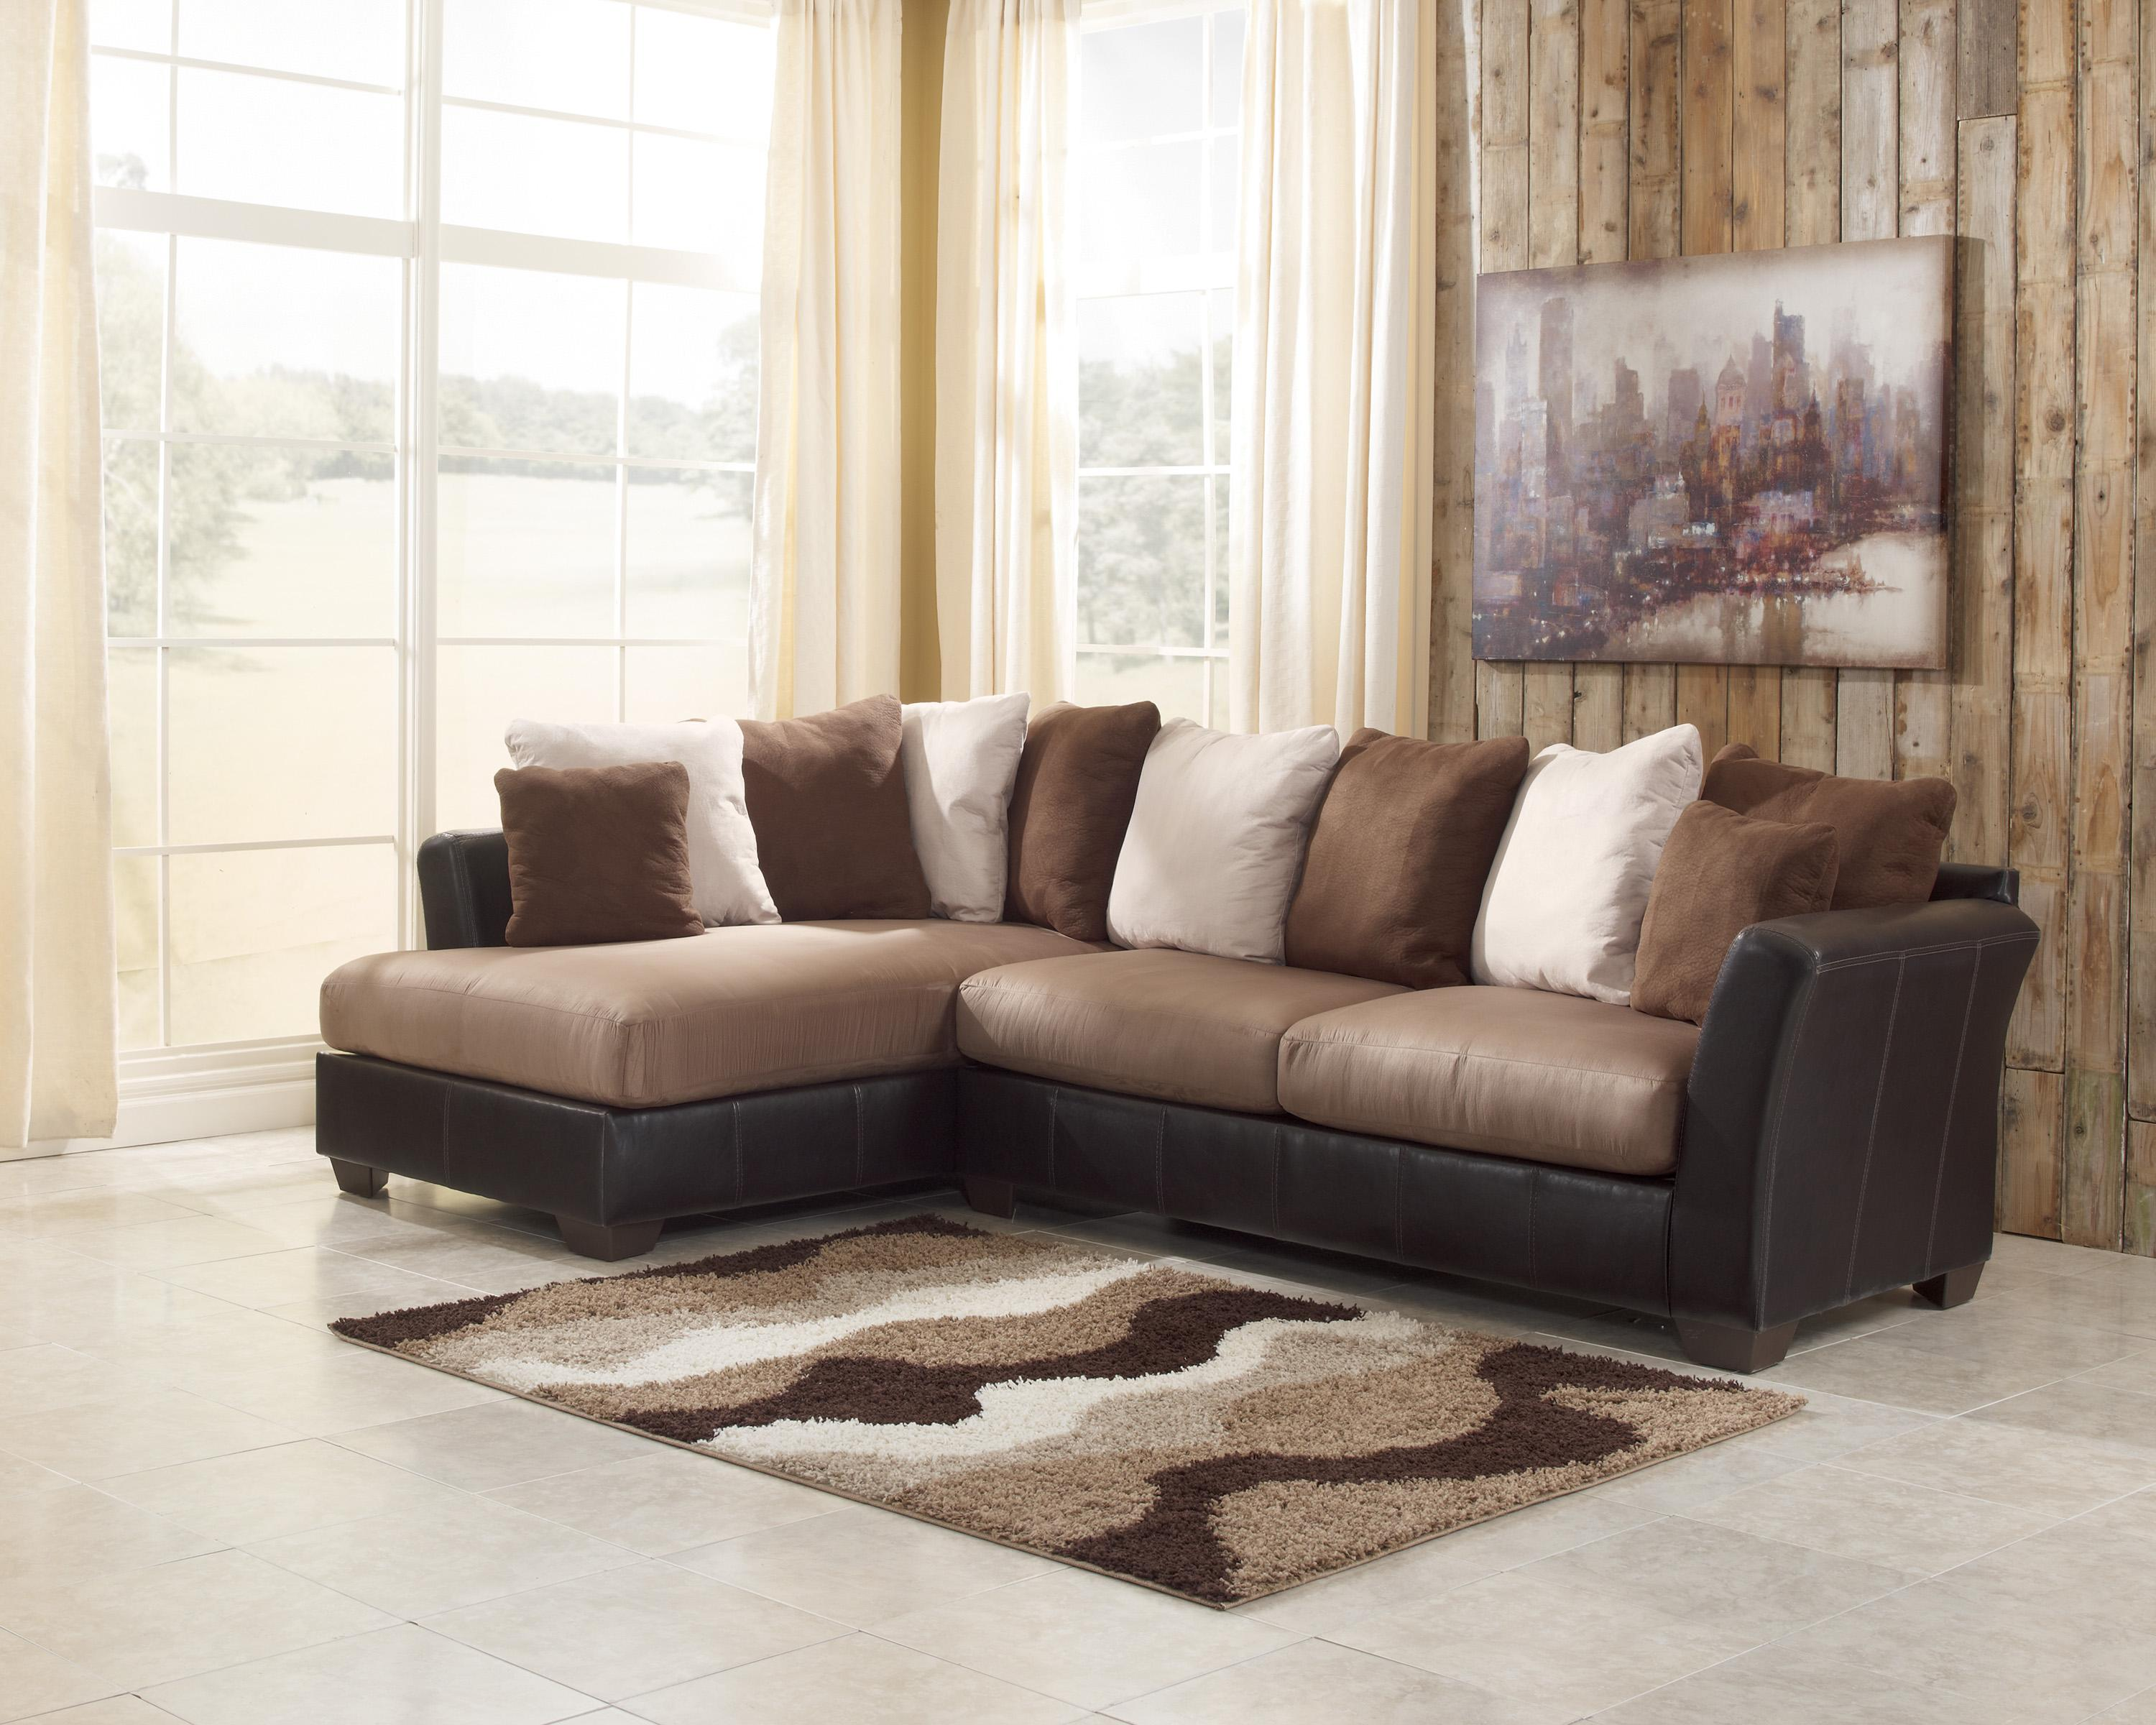 sleeper made design sectional american sofa sofas journey comfort leather mn